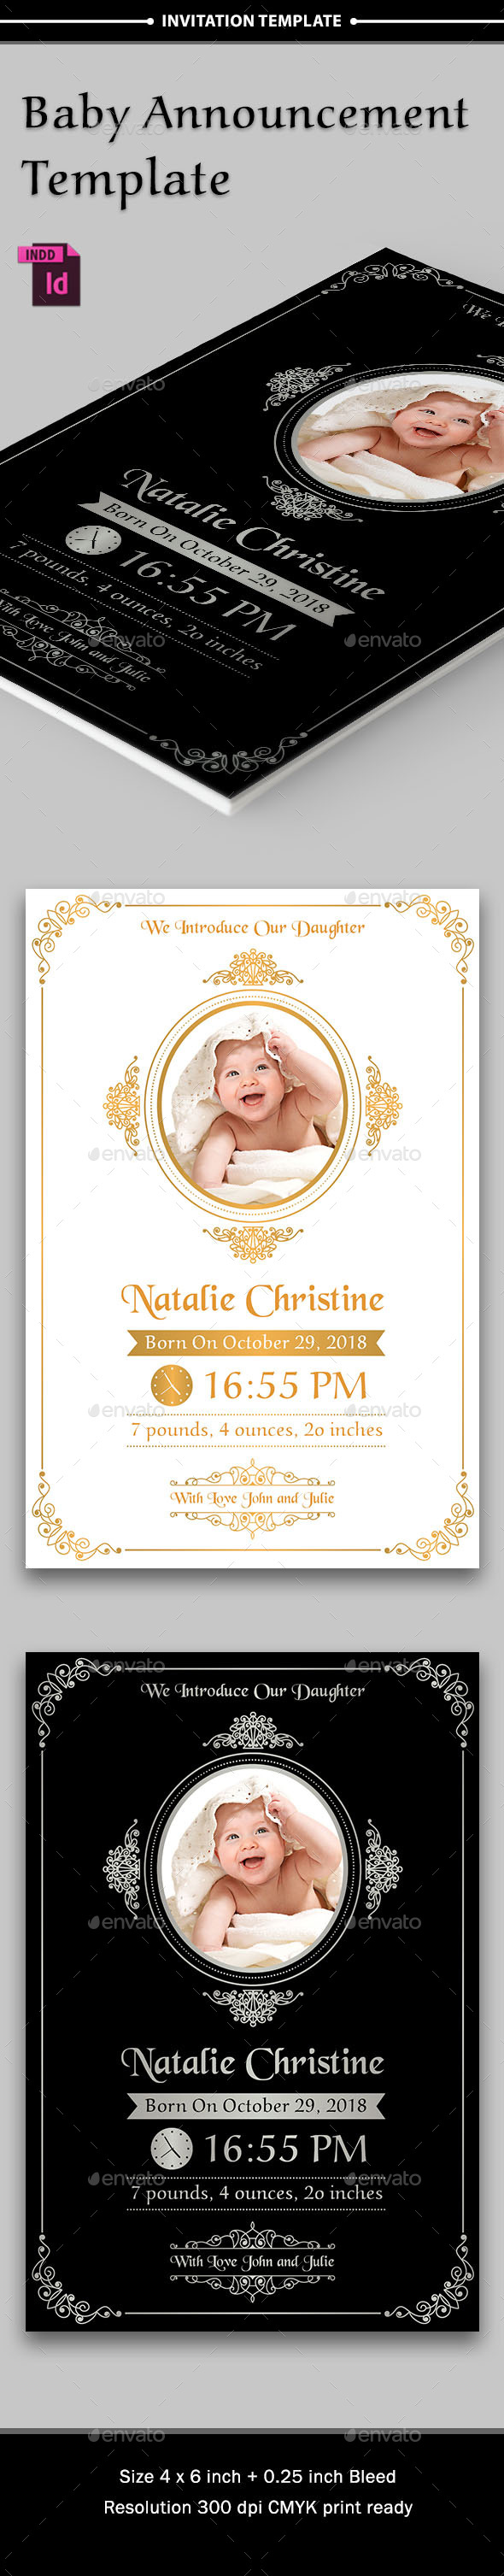 Baby Announcement Template - Vol.4 - Cards & Invites Print Templates